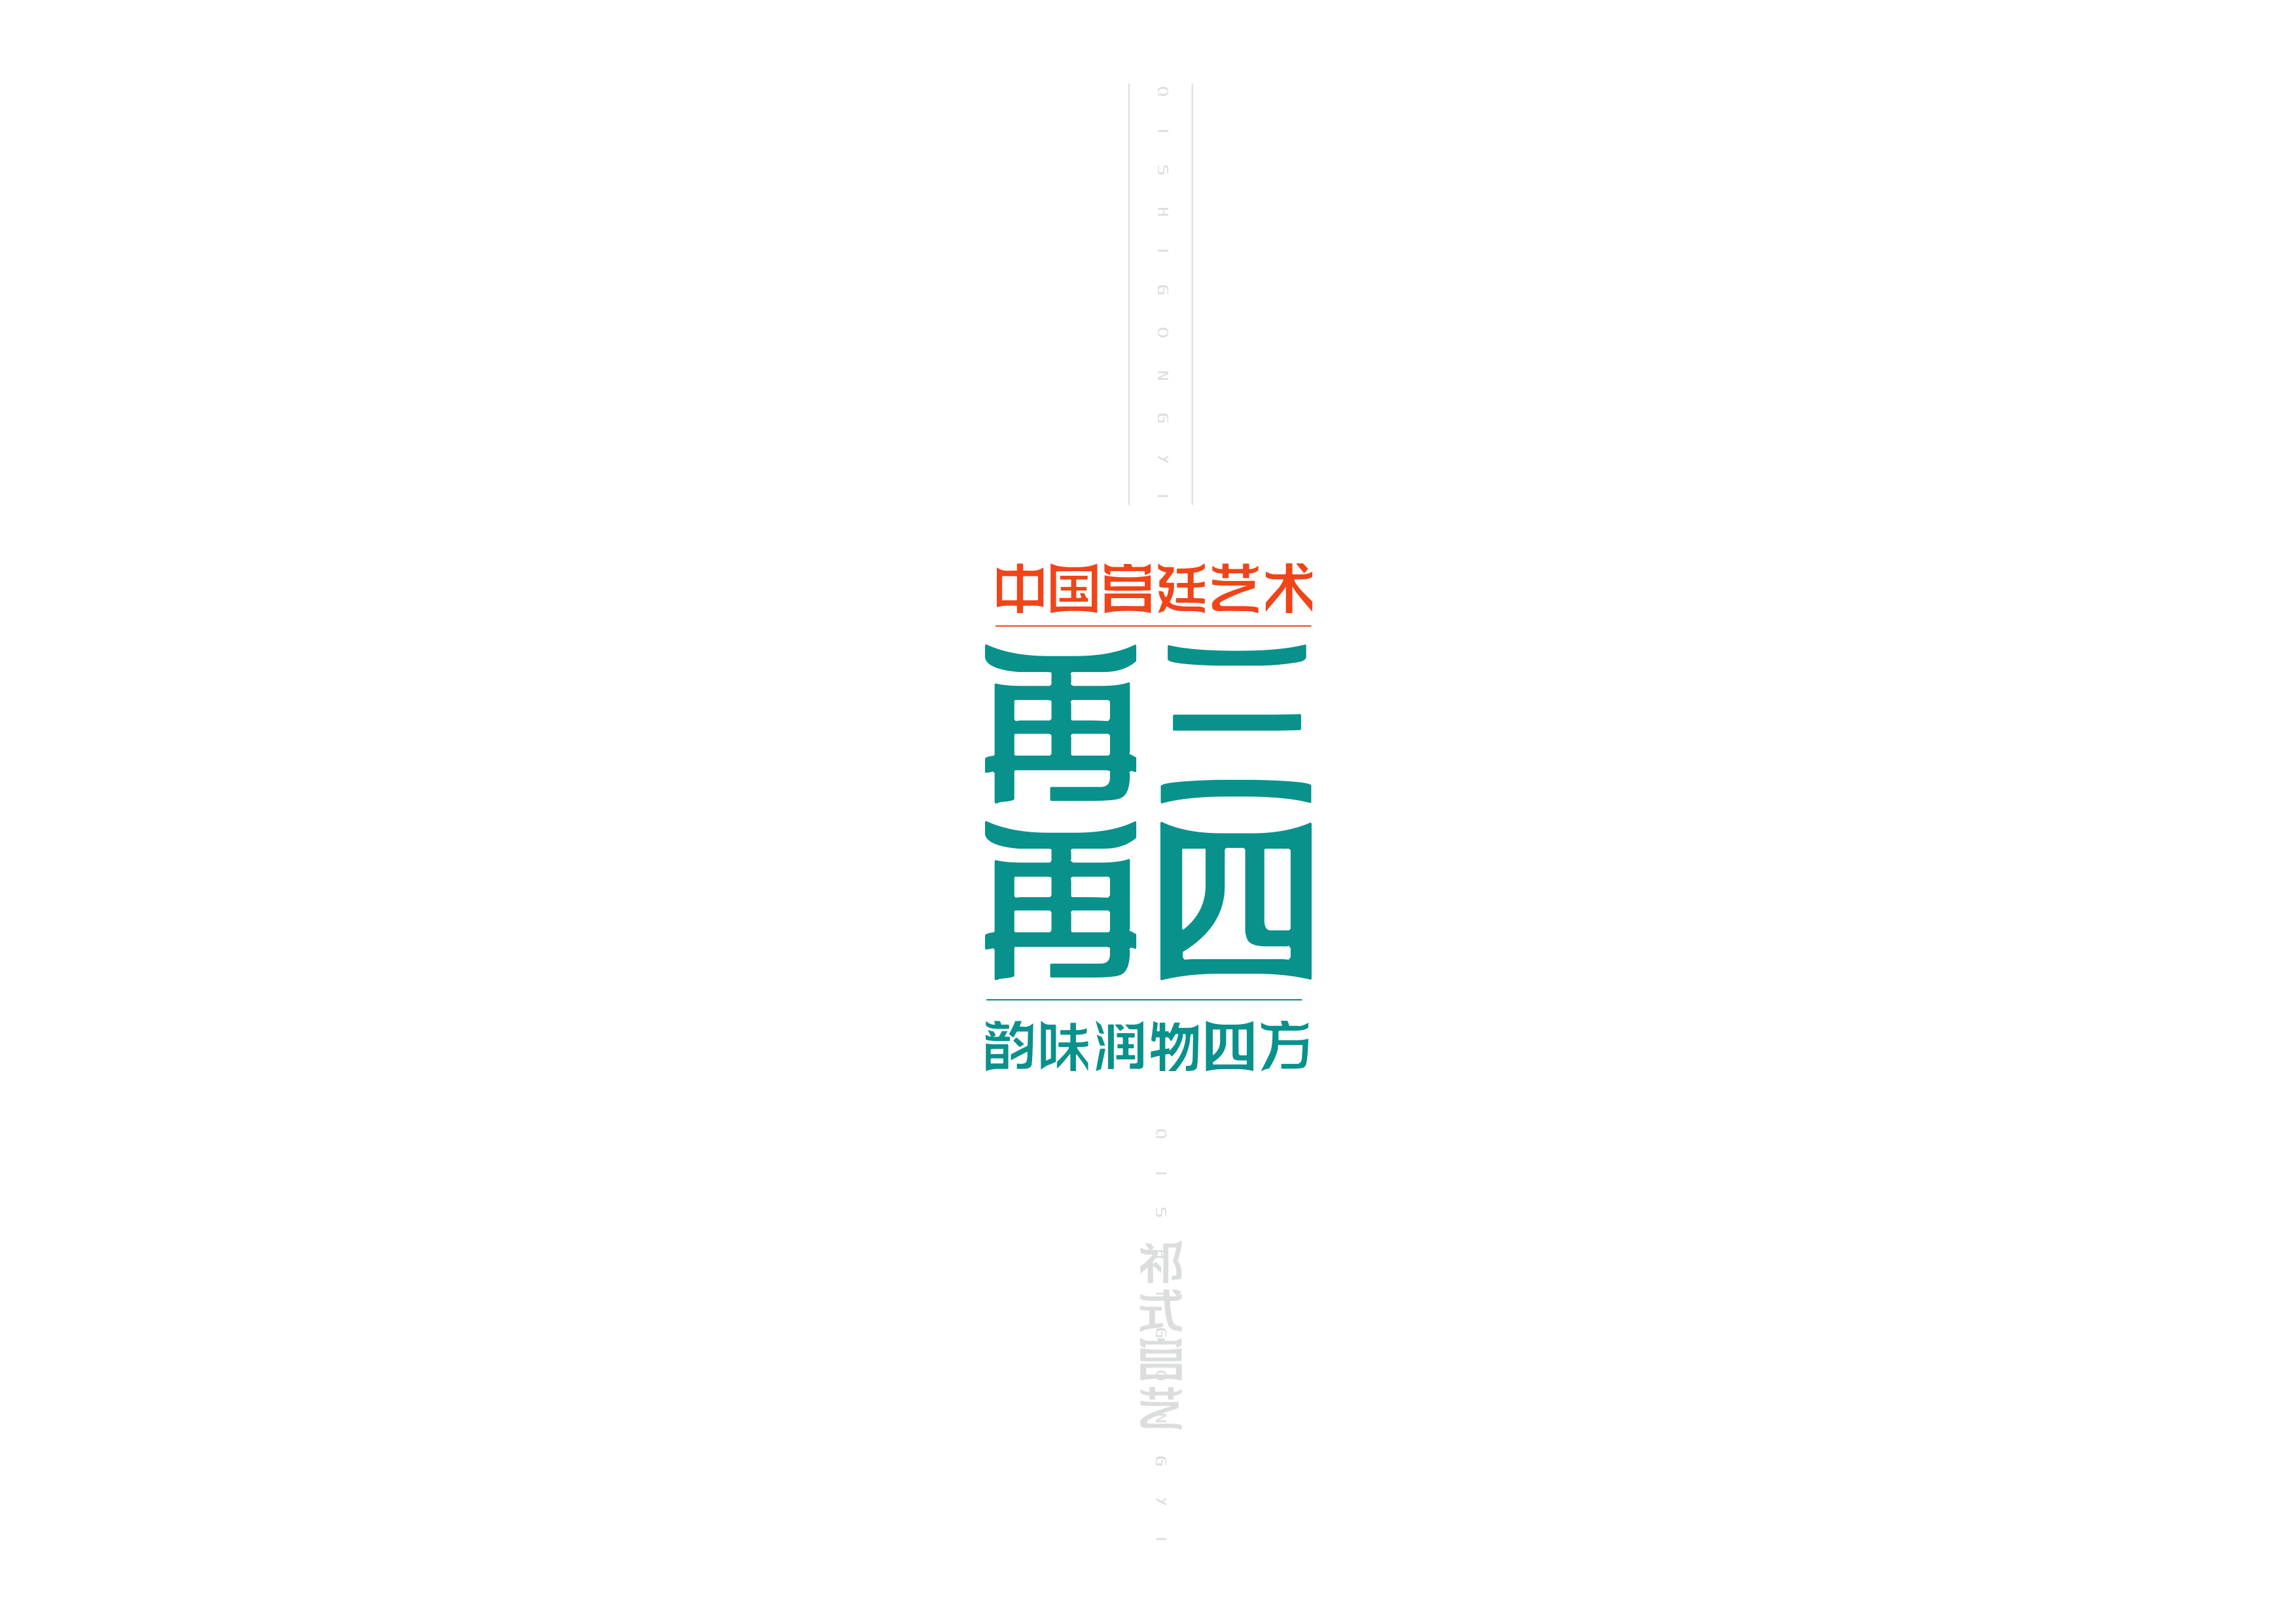 41P Collection of the latest Chinese font design schemes in 2021 #.37